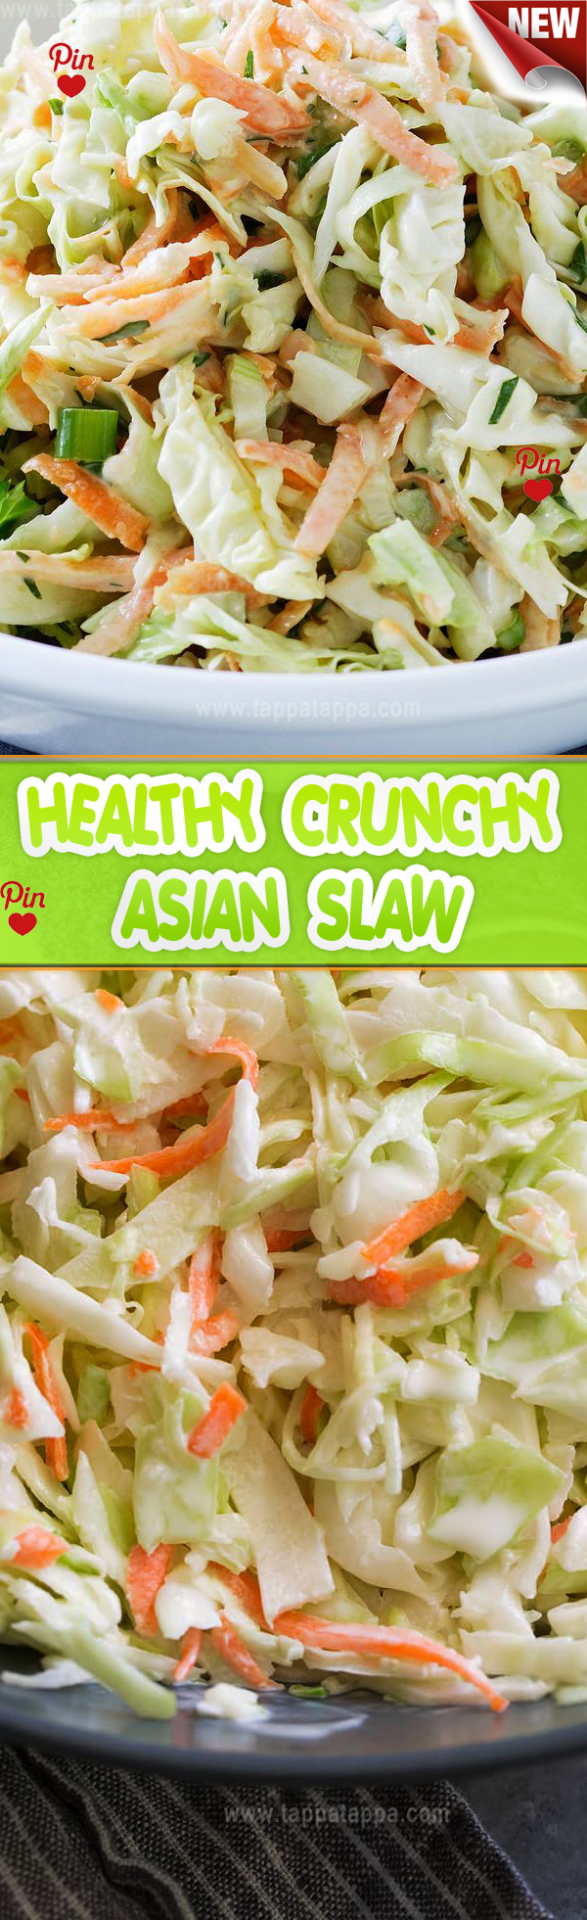 HEALTHY CRUNCHY ASIAN SLAW The defining ingredients for an Asian slaw are cabbage rice vinegar and toasted sesame oil. This version also has some peanut butter in the dressing and some twice toasted peanuts. #shrimpseasoning